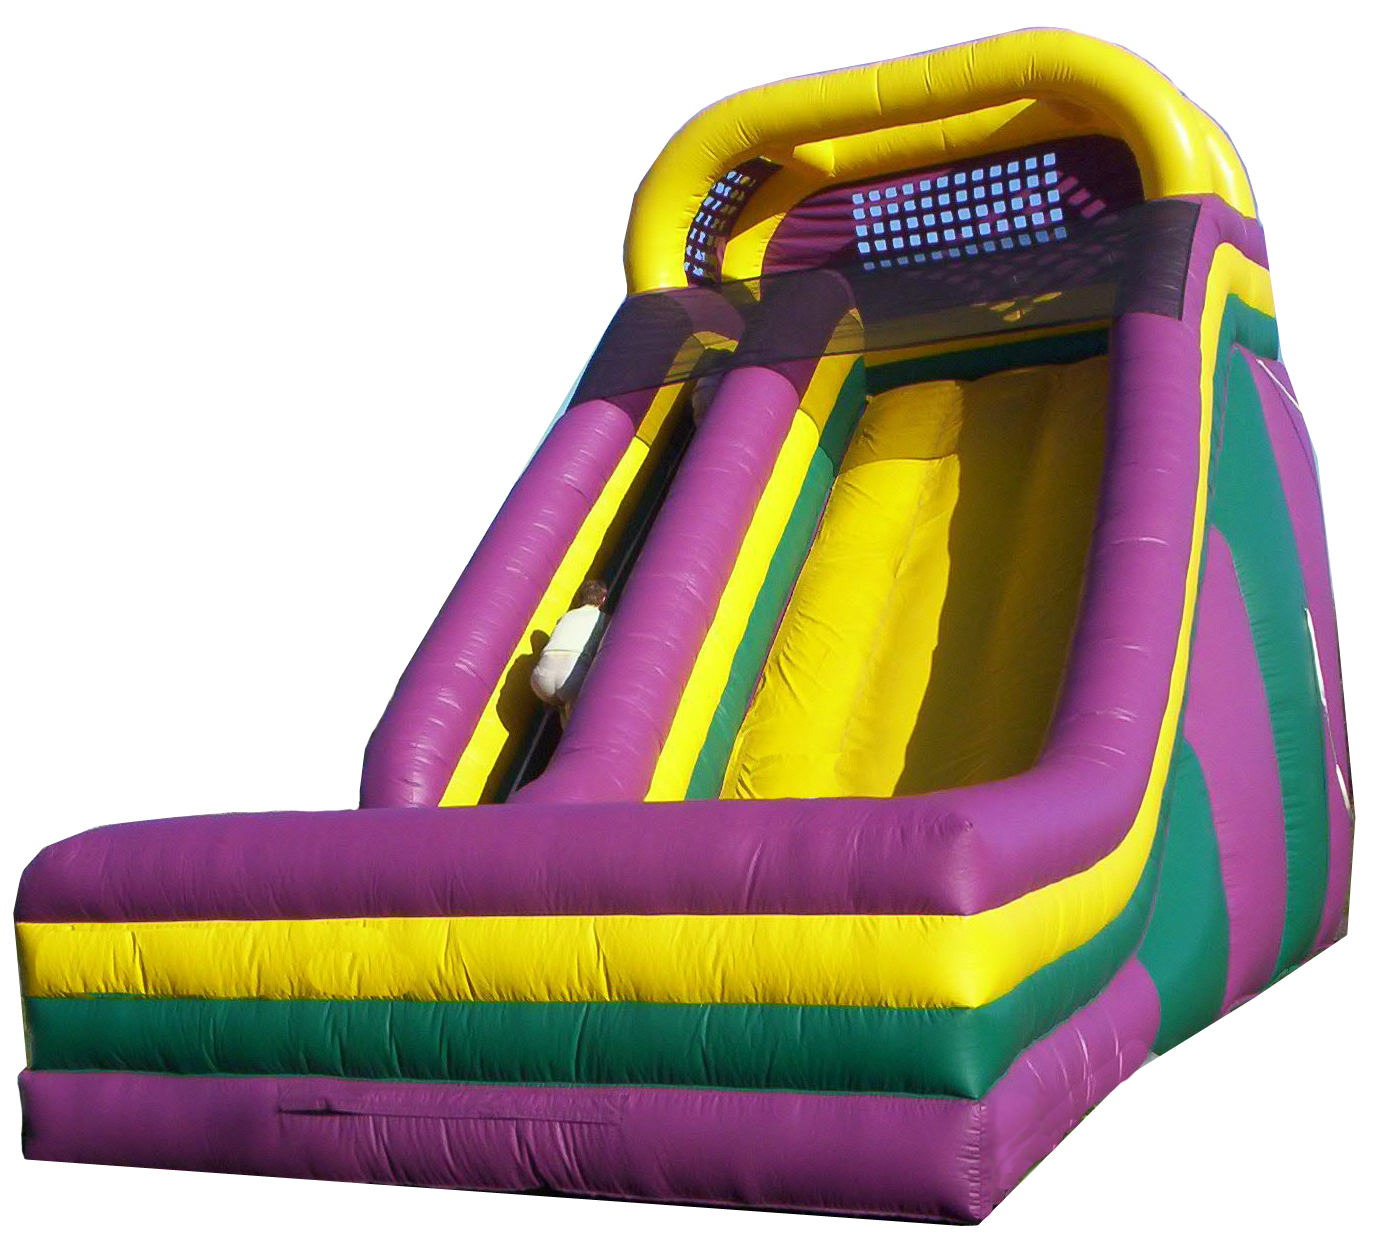 Giant 22' Tall Slide